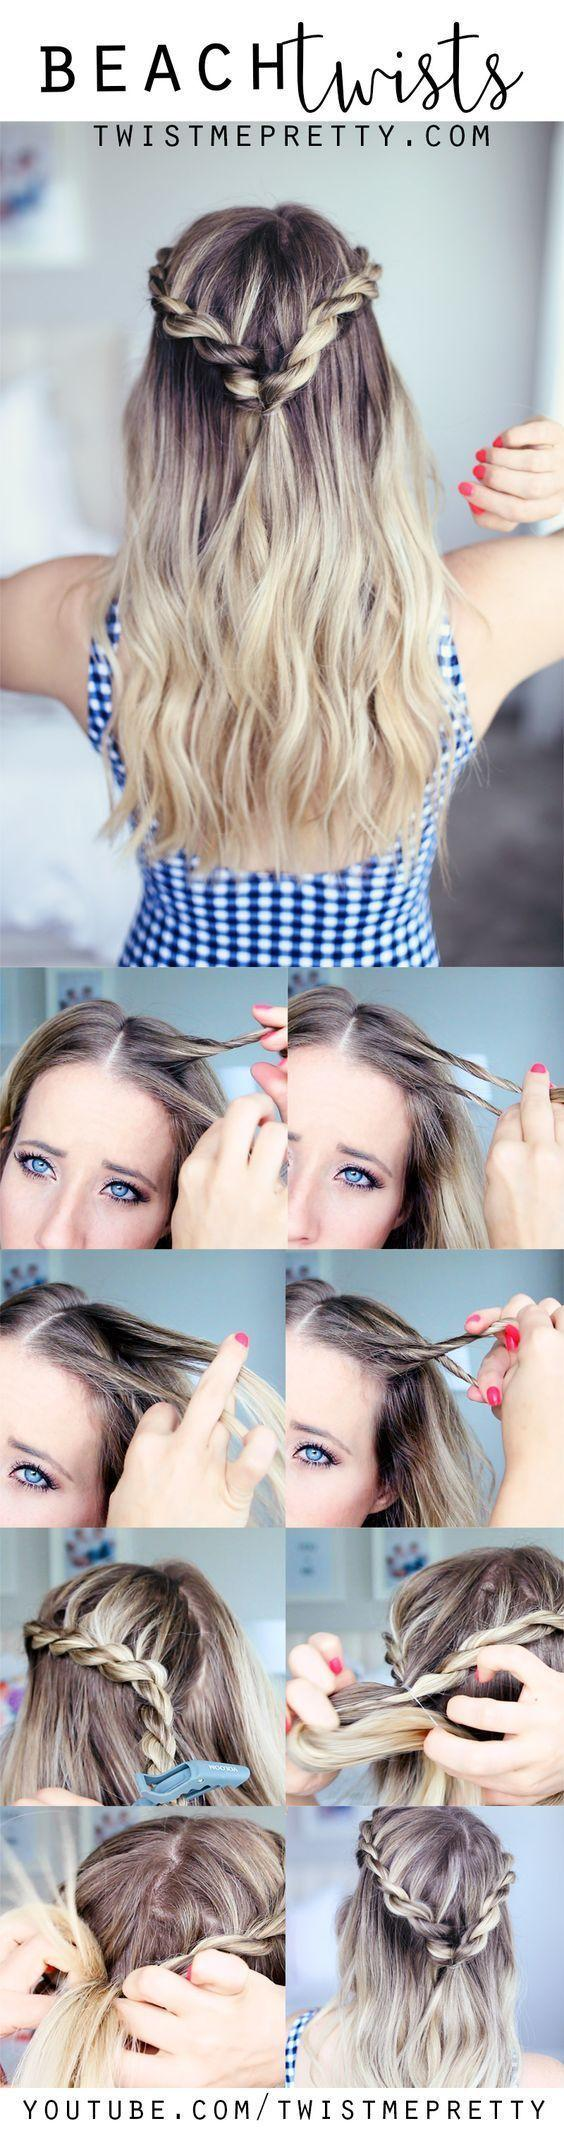 26 Gorgeous Long Hairstyles You Must Try for Weekend Party ...